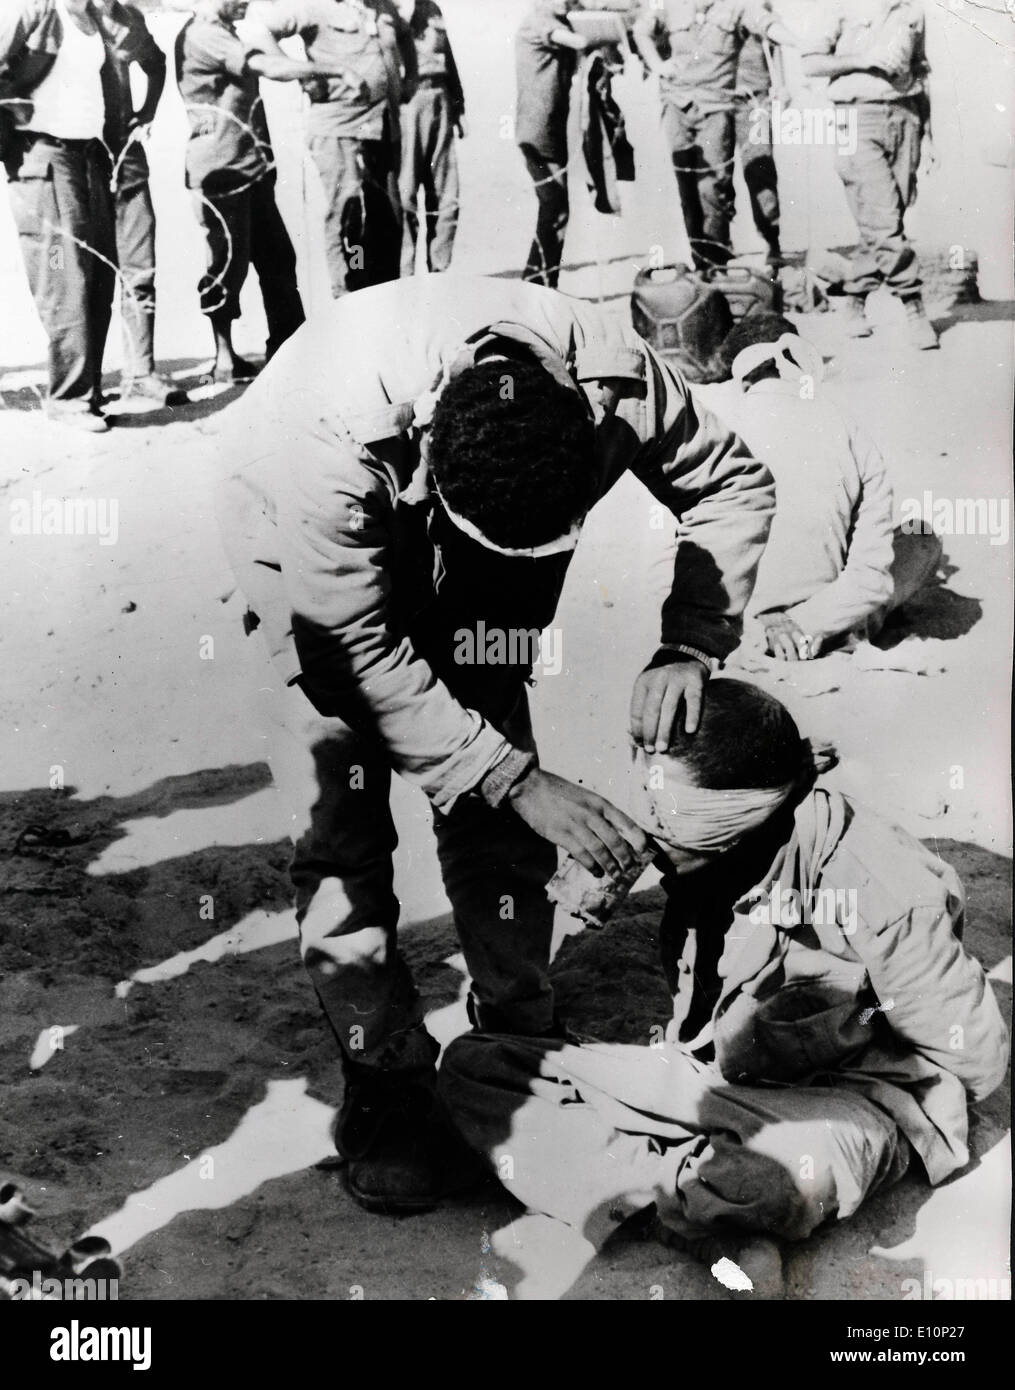 an Egyptian prisoner giving water to a comrade during 1973 Yom Kippur War in Cairo - Stock Image